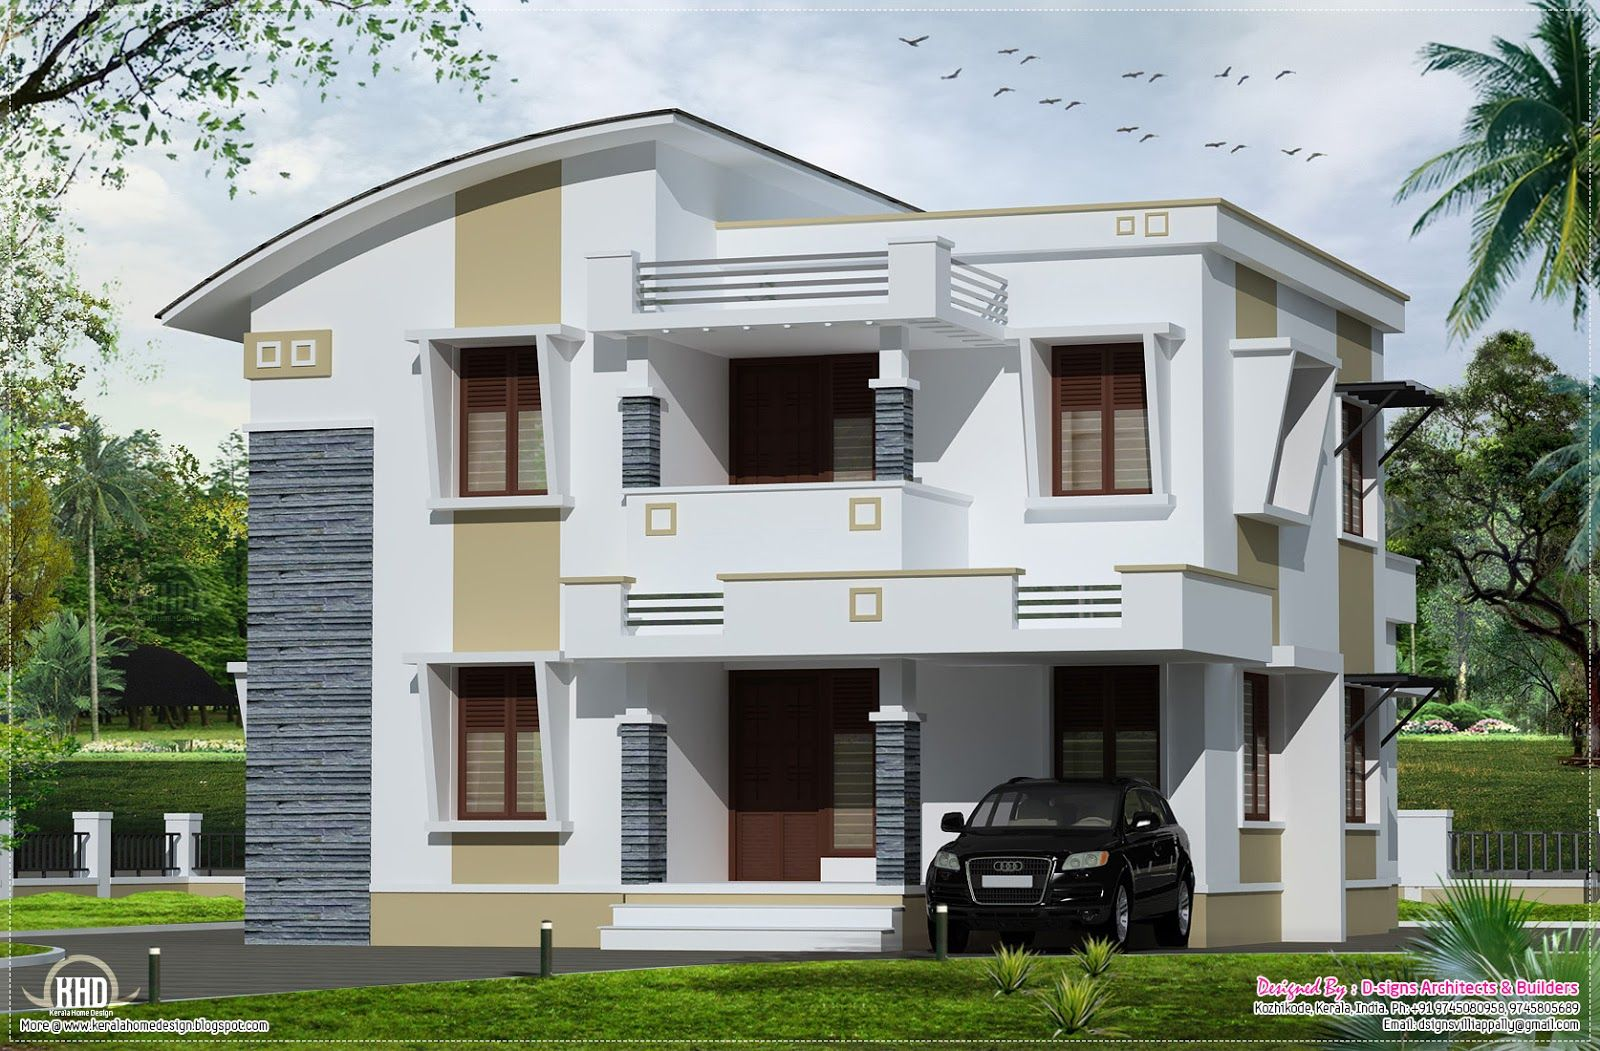 Picture of house roof design home designed by  signs architects builders kozhikode kerala also simple flat in sq feet homes casas rh ar pinterest